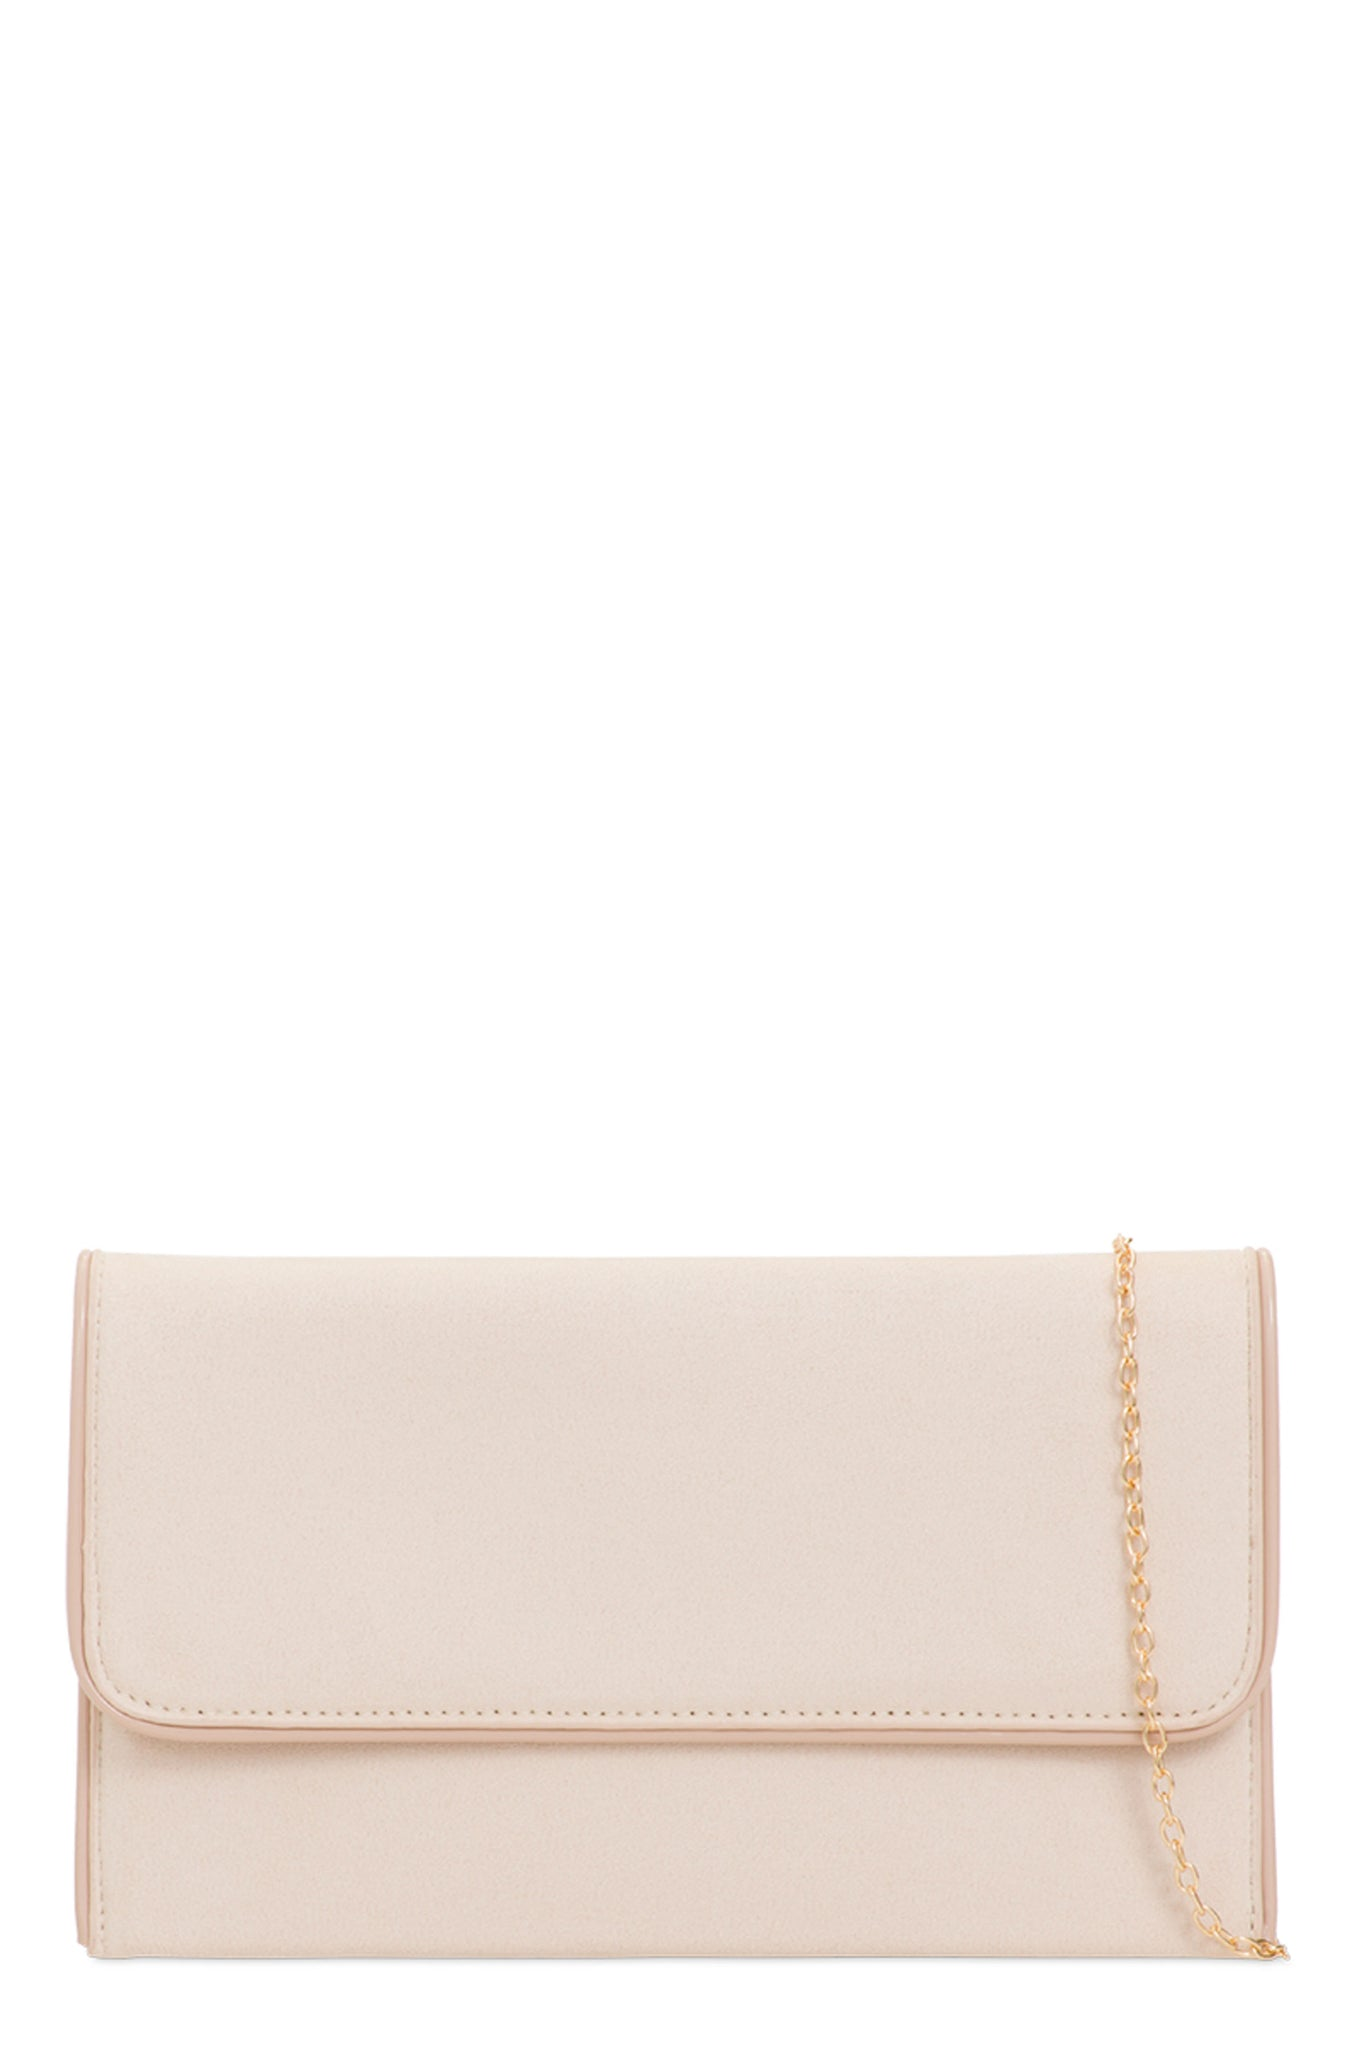 hot-selling clearance top-rated promo code Kate Nude Suedette Clutch Bag